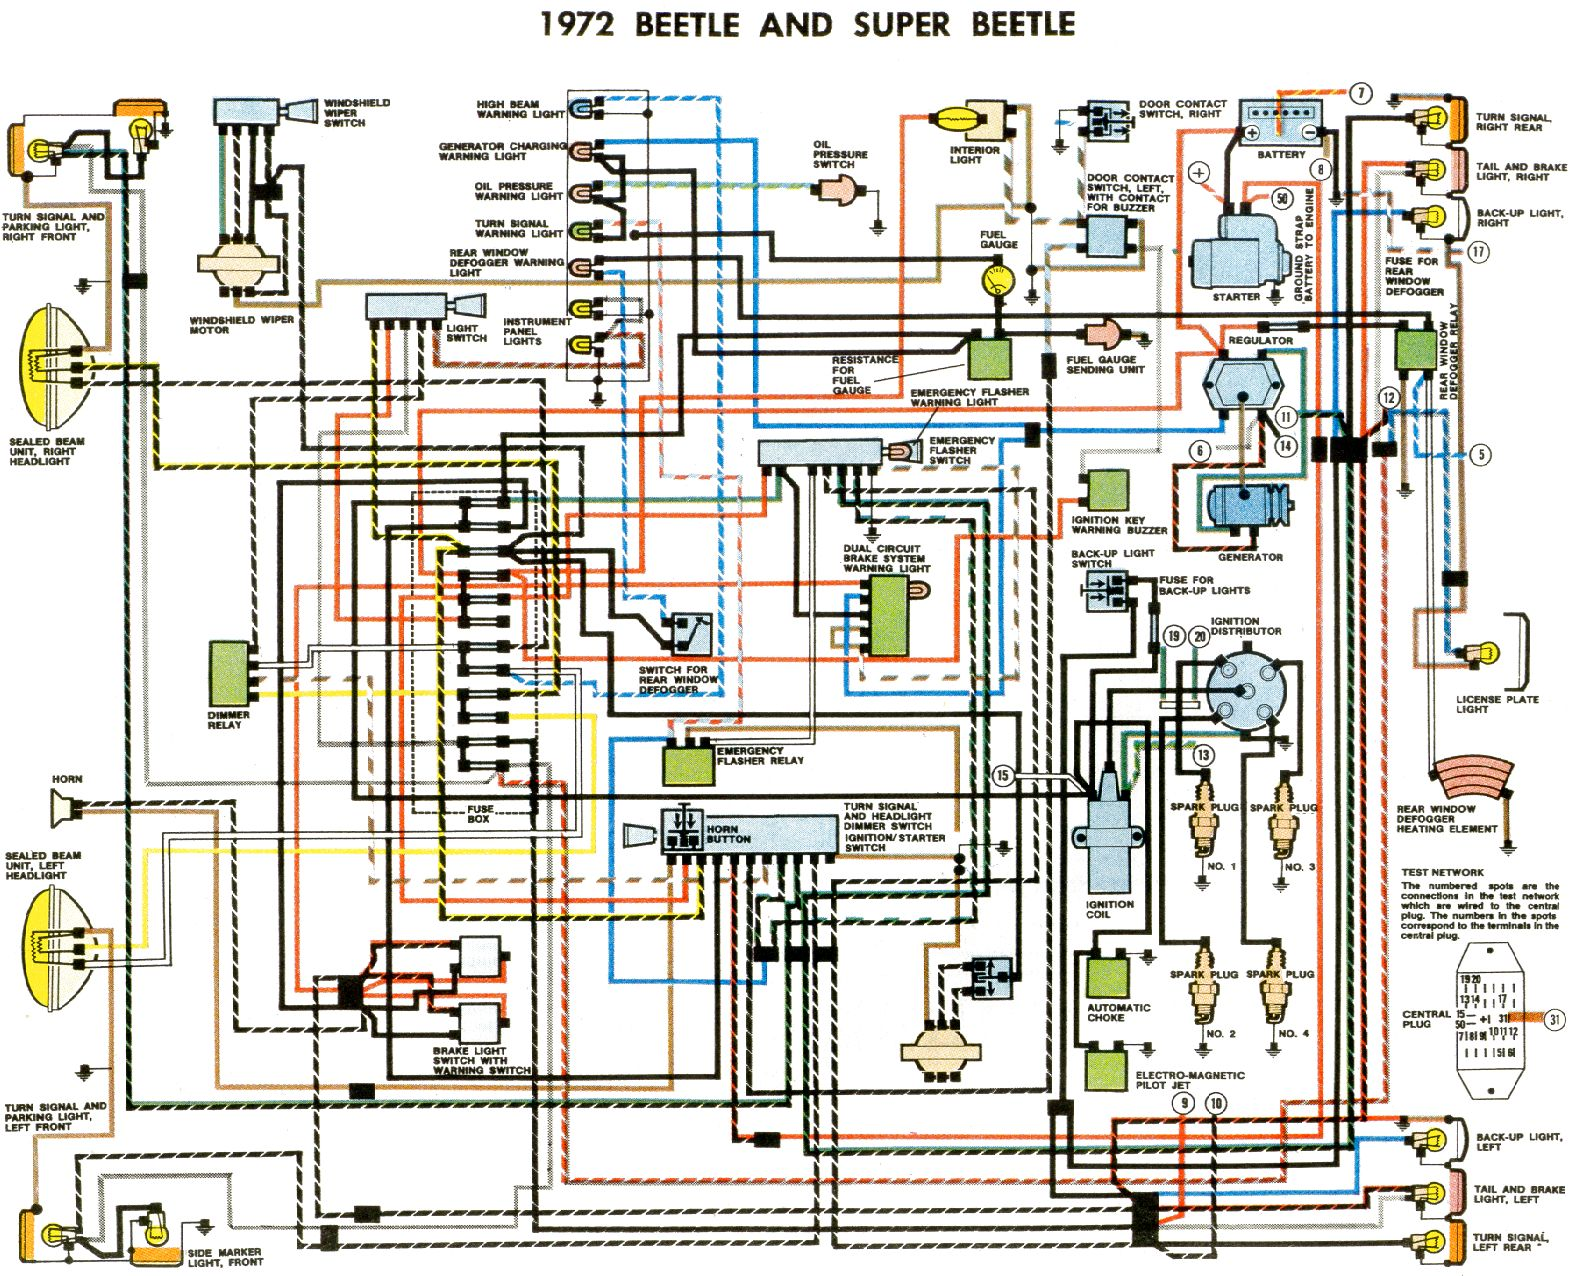 Wiring Diagram Jetta Cli 24 Images Bug 72 Vwvortex Com 1972 Super Fuel Guage Issues Mk3 At Highcare